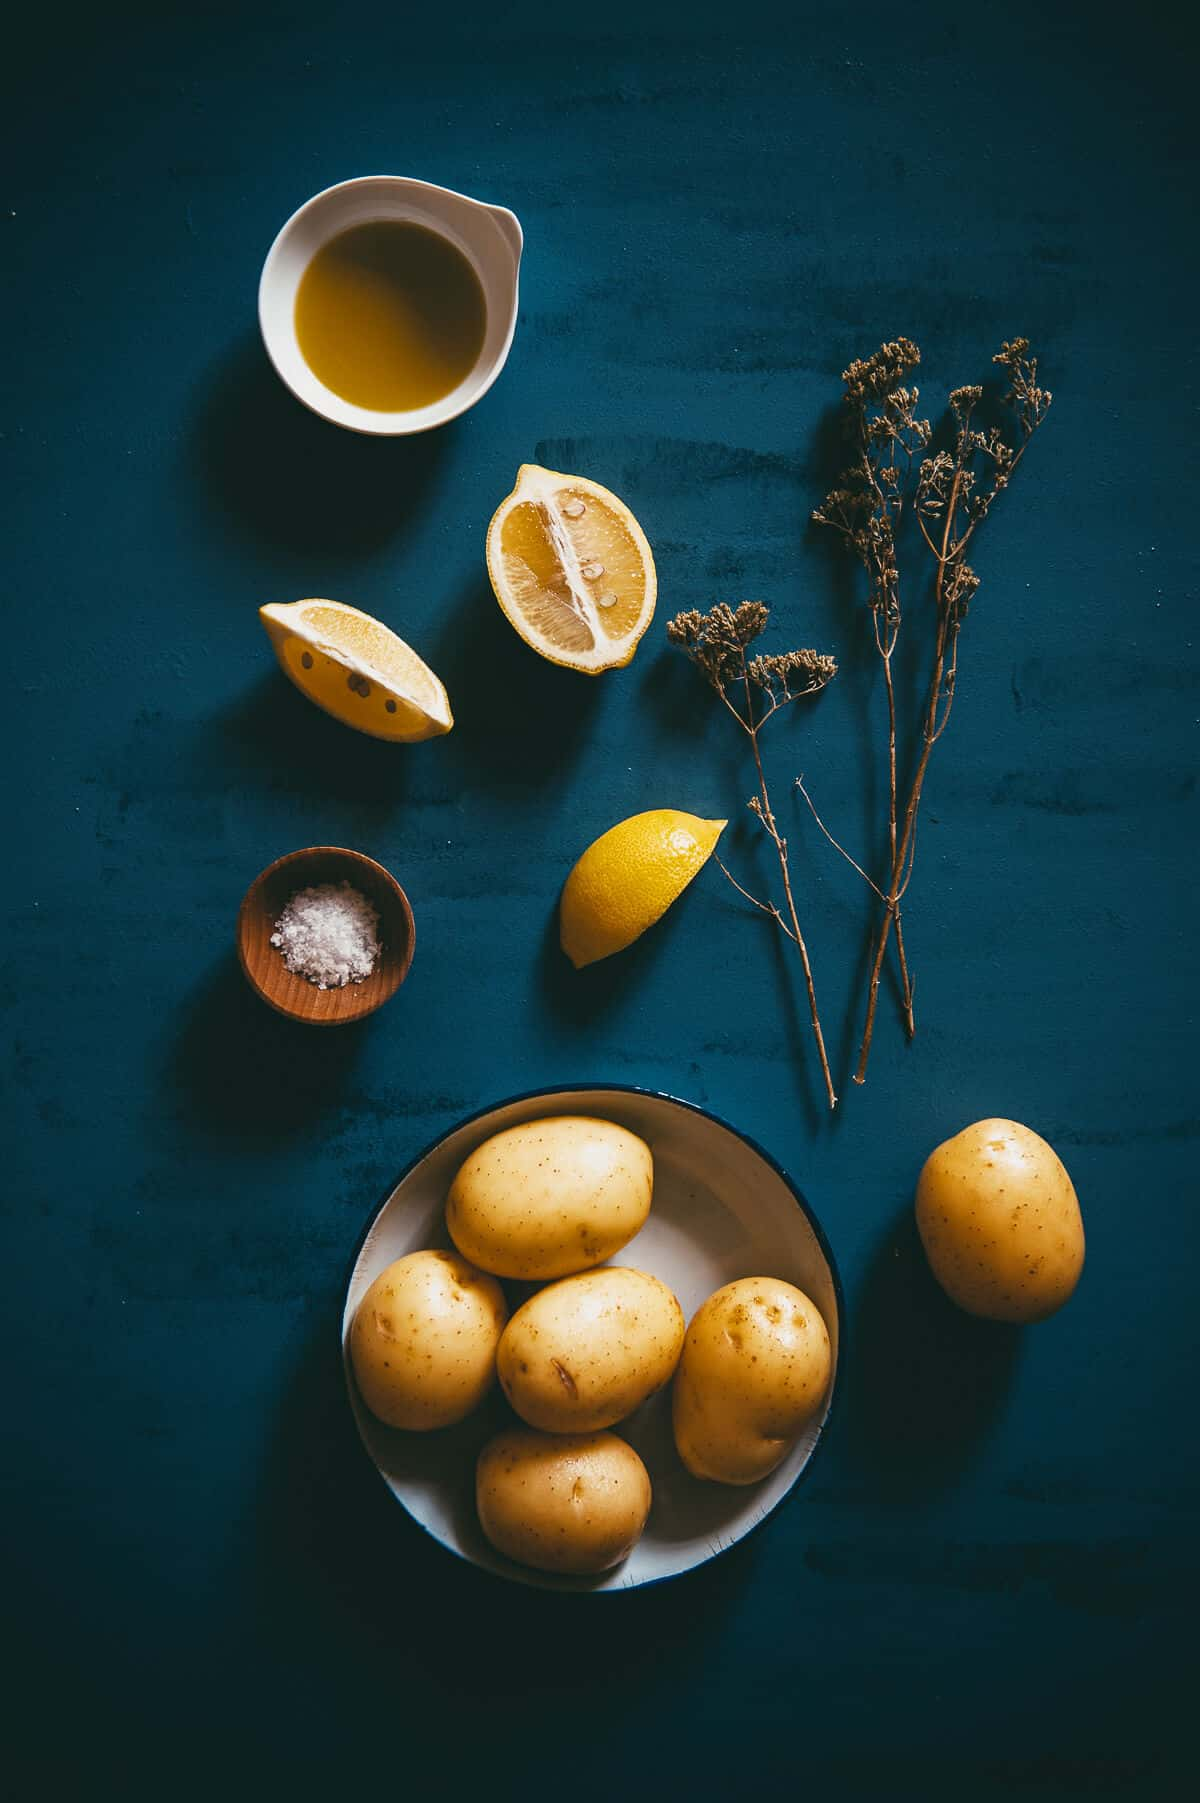 potatoes, olive oil, oregano and lemons laid out on  a blue table